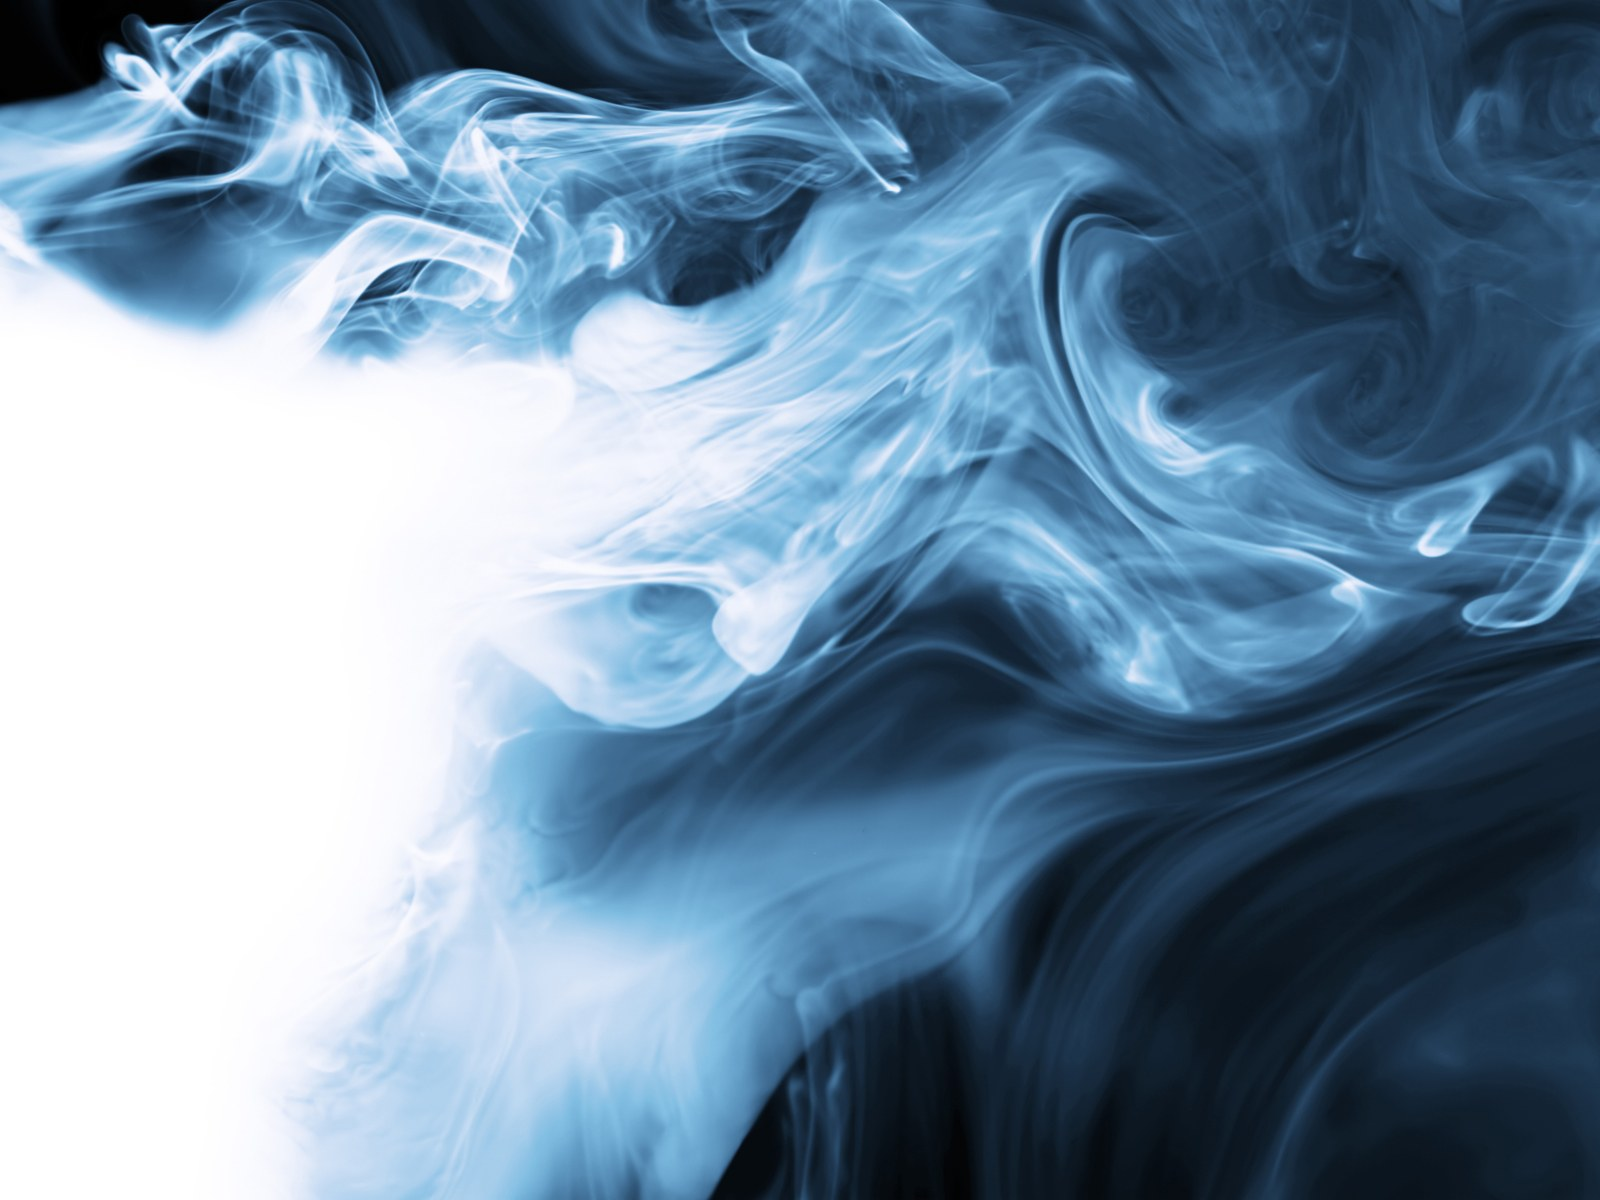 Blue Smoke Wallpaper: Wallpaper Abstract Art Backgrounds Blue Smoke Fourwallsonlycom 1600x1200px